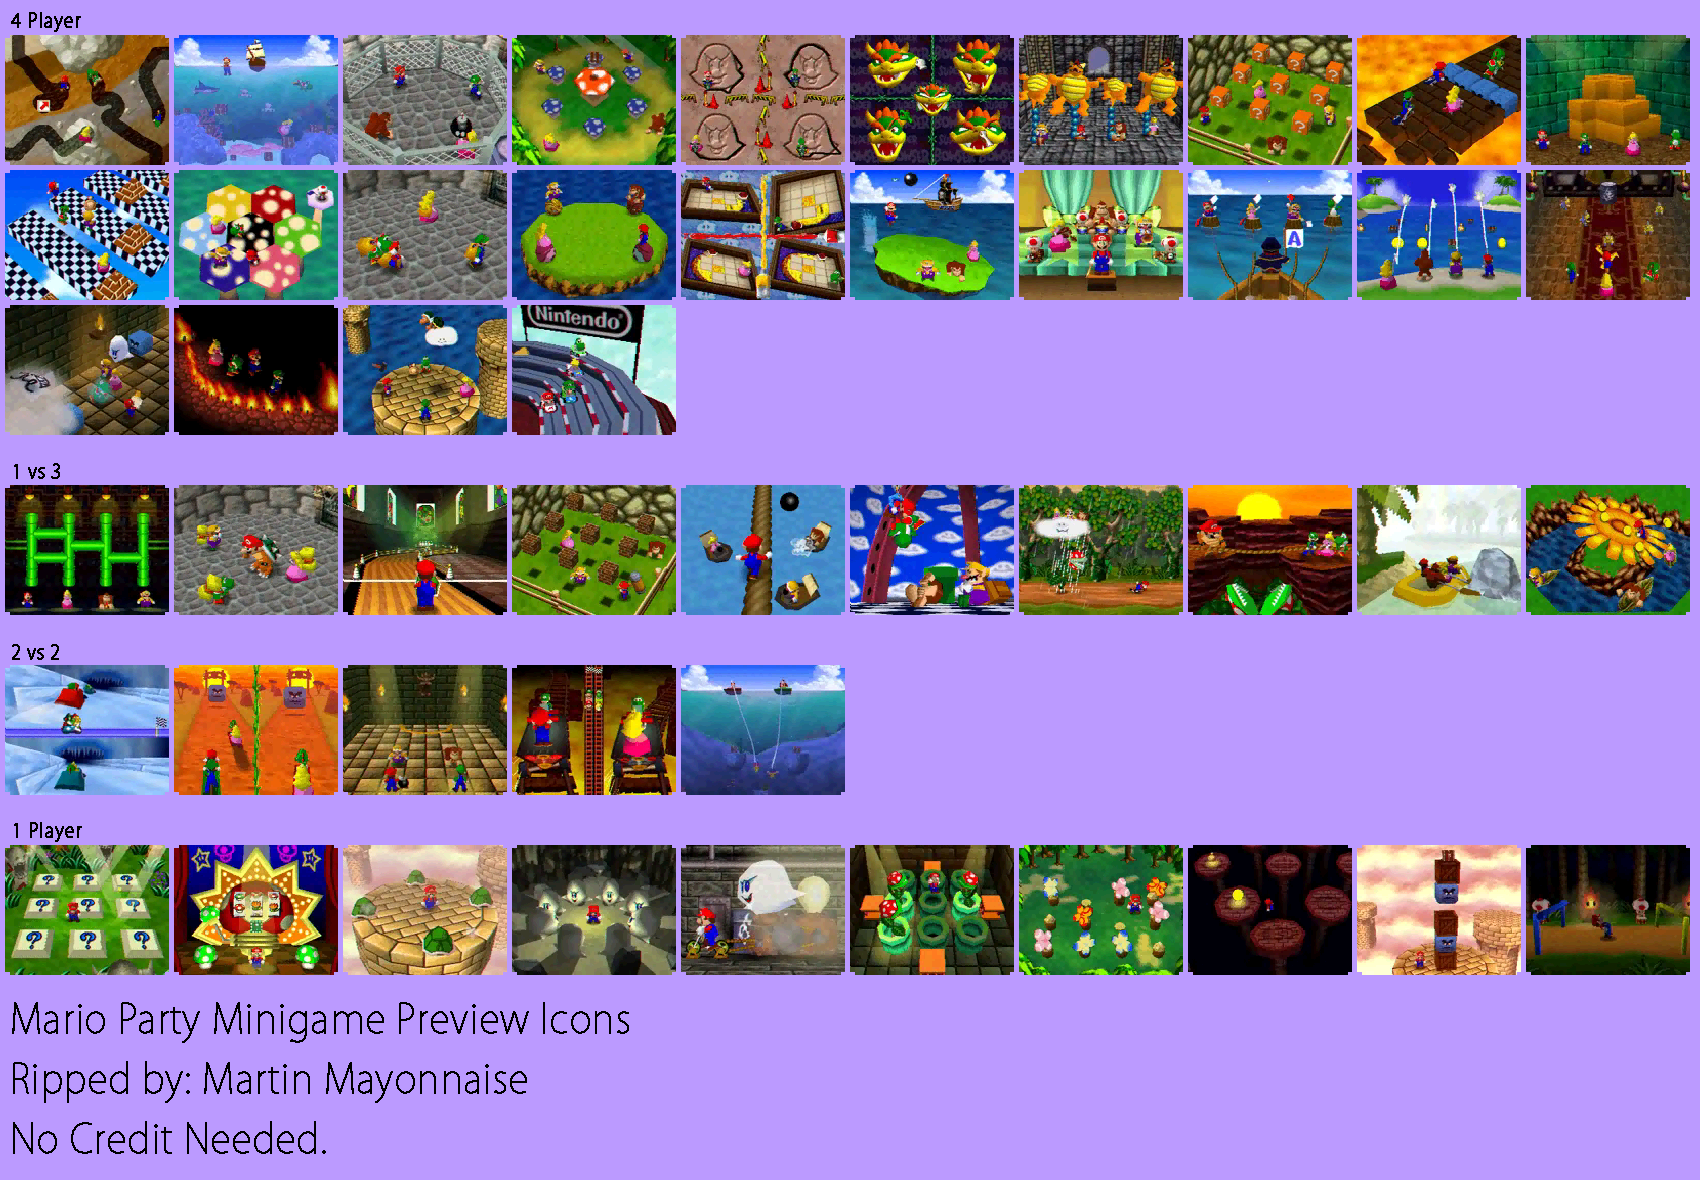 Minigame Preview Icons